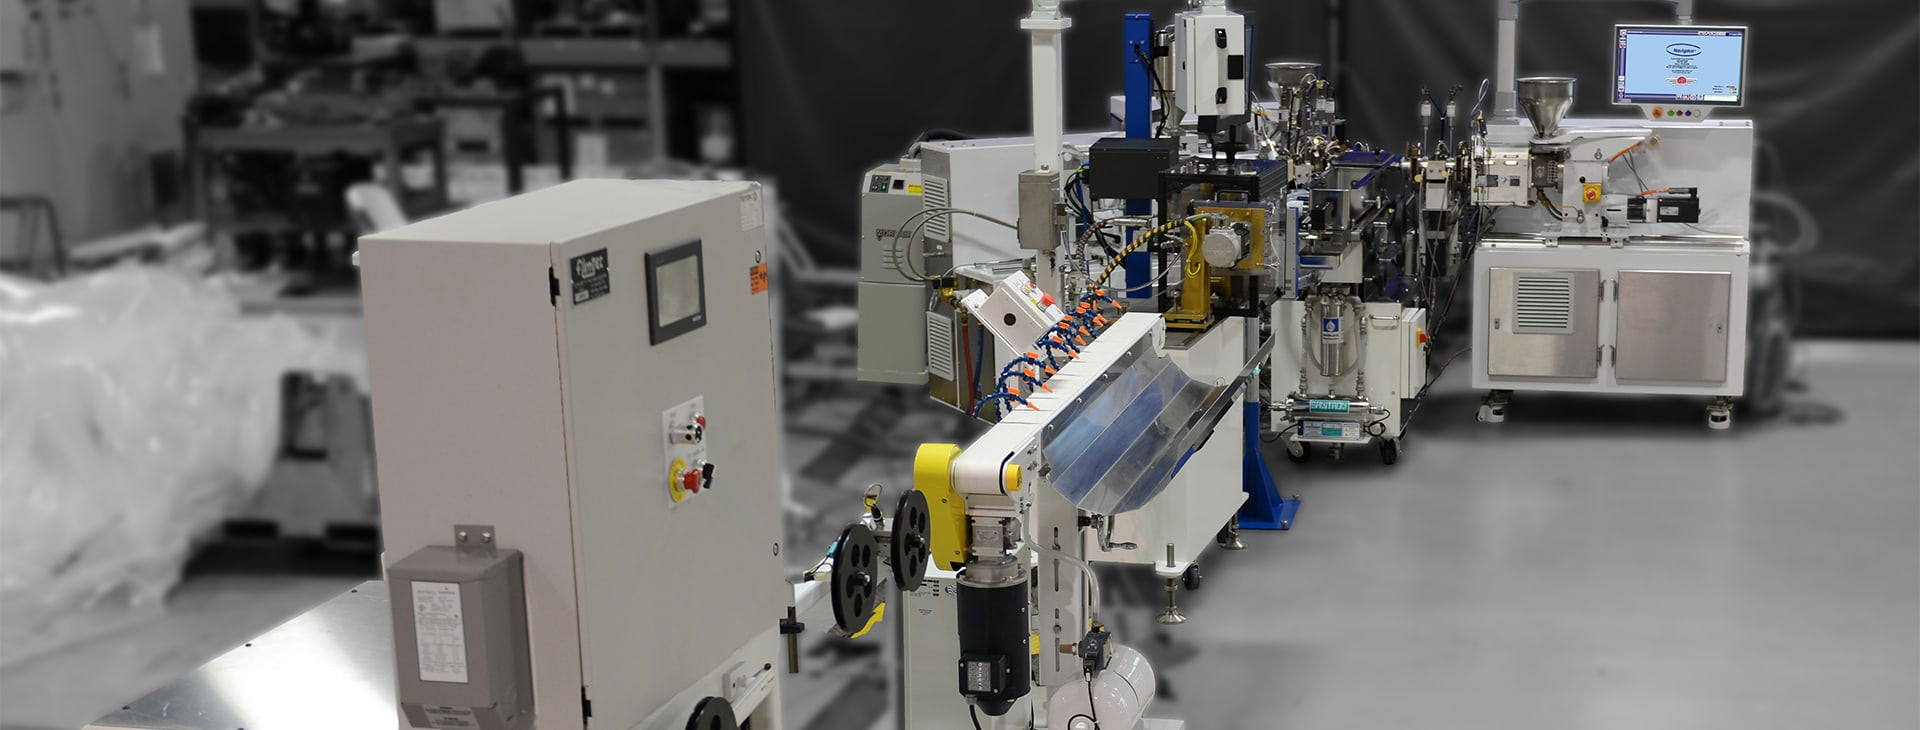 extrusion system shown with multiple modules in a factory setting